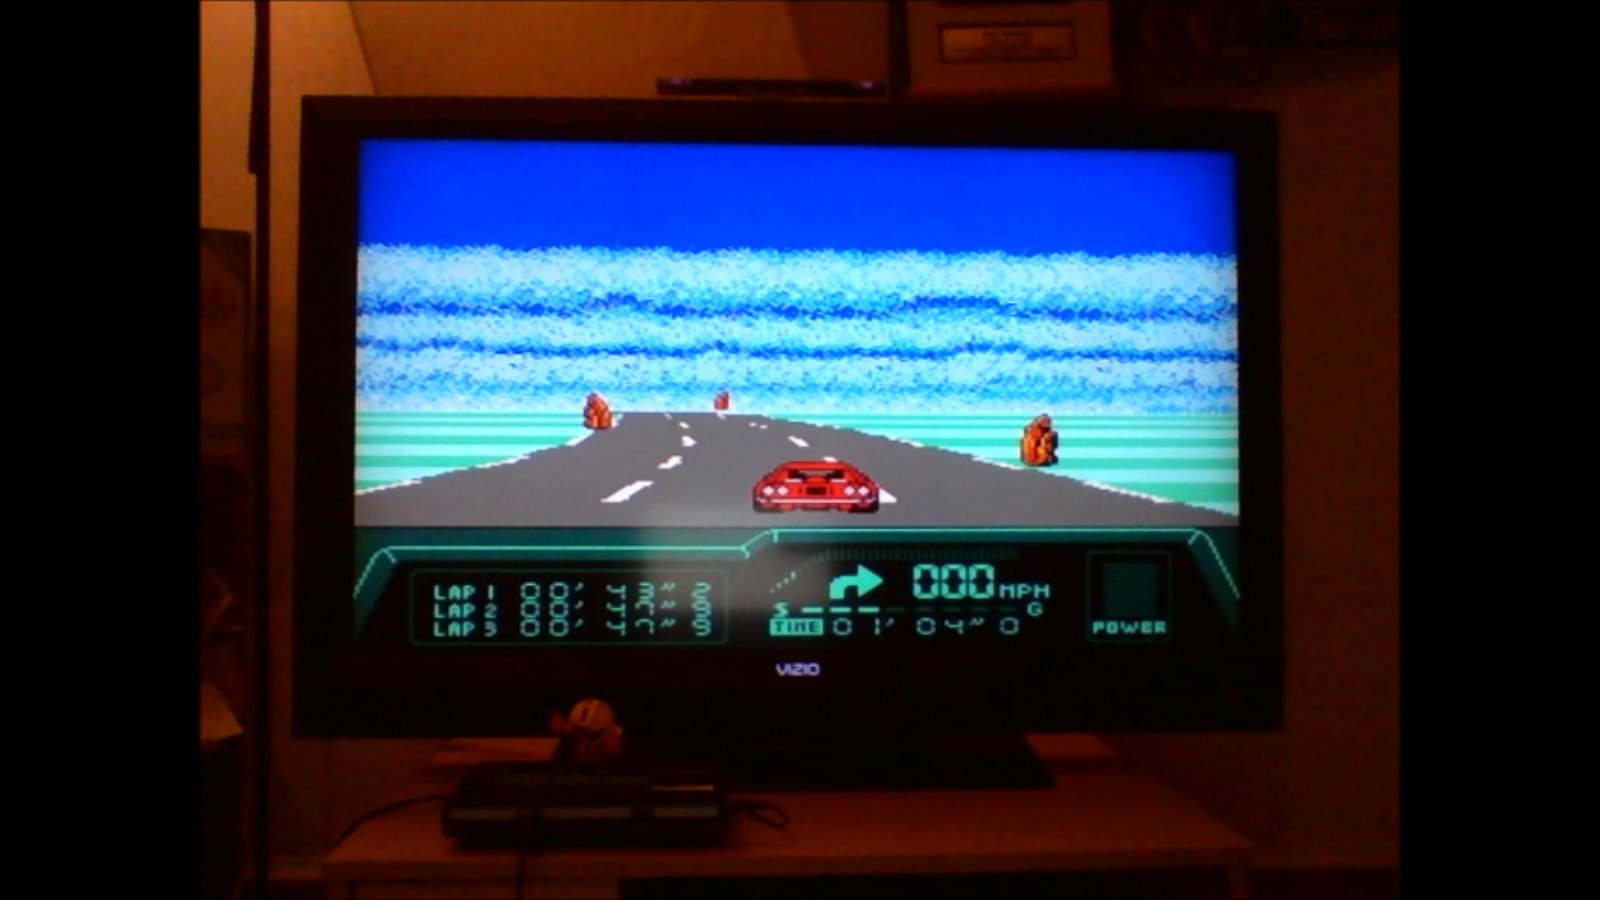 DuggerVideoGames: Rad Racer 2: Stage 3: Gettysburg [Fastest Lap] (NES/Famicom Emulated) 0:00:43.2 points on 2016-08-24 00:58:53